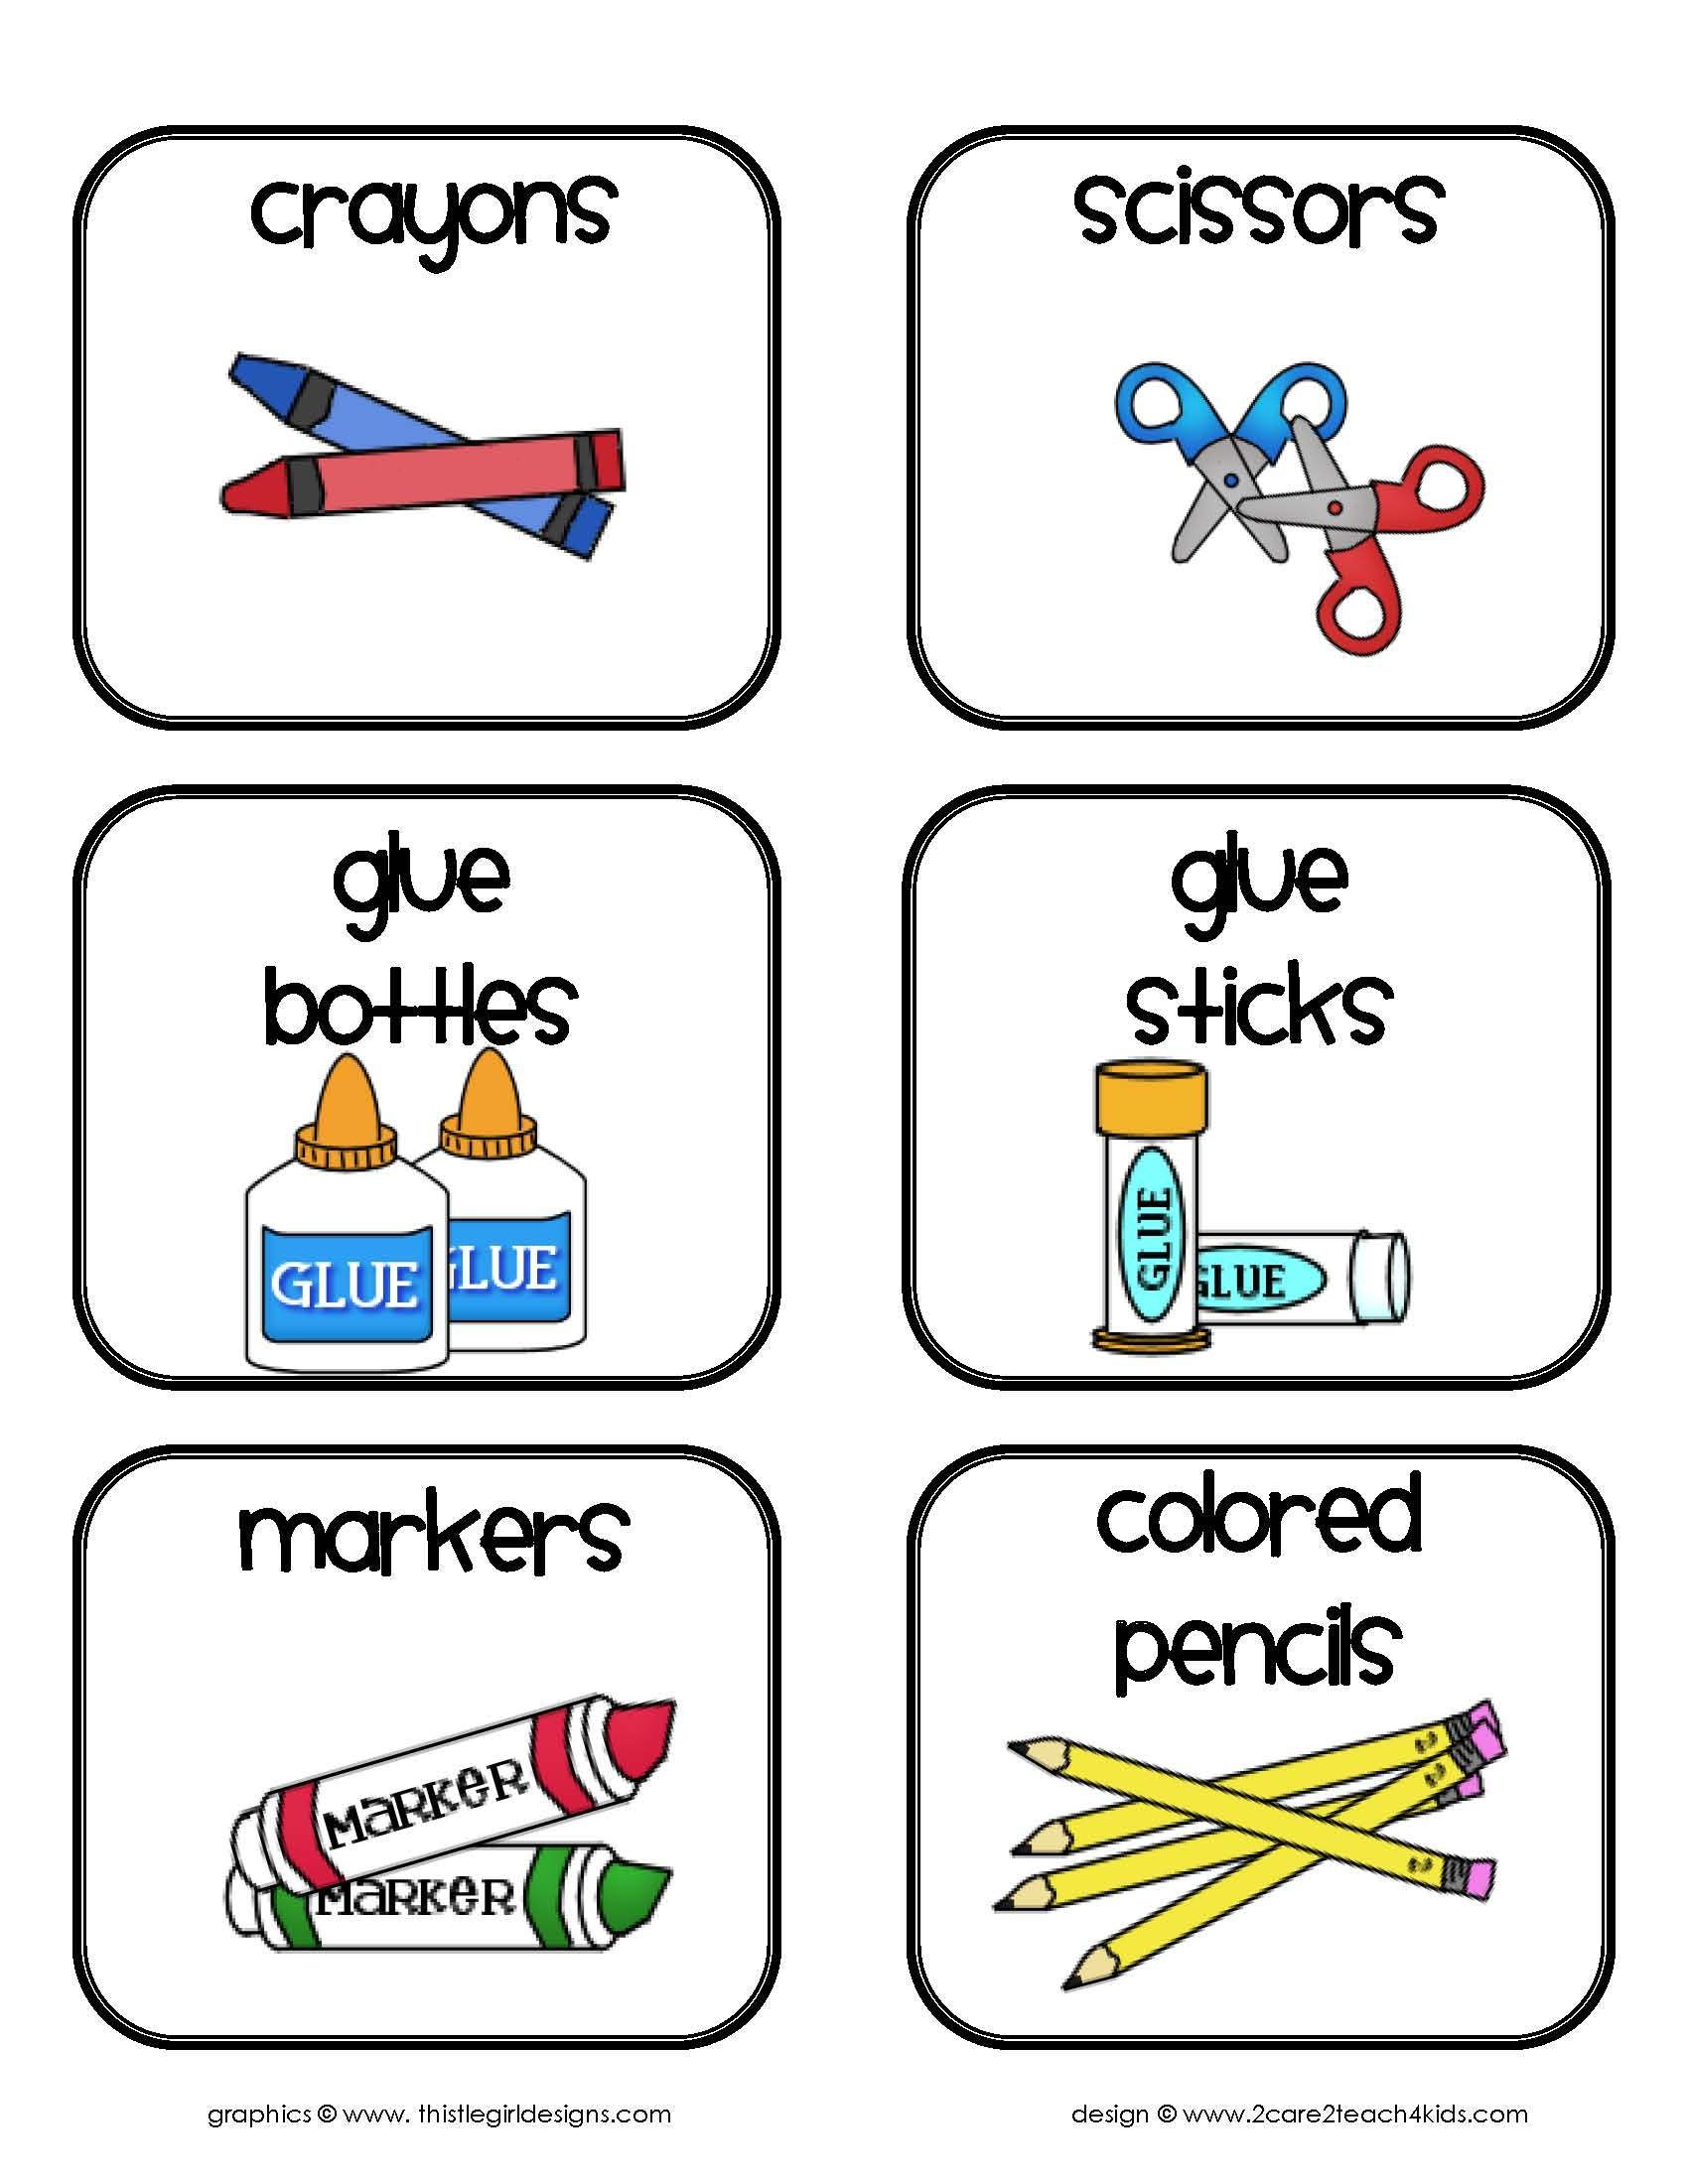 Free Printable Classroom Signs And Labels (85+ Images In Collection - Free Printable Classroom Labels With Pictures